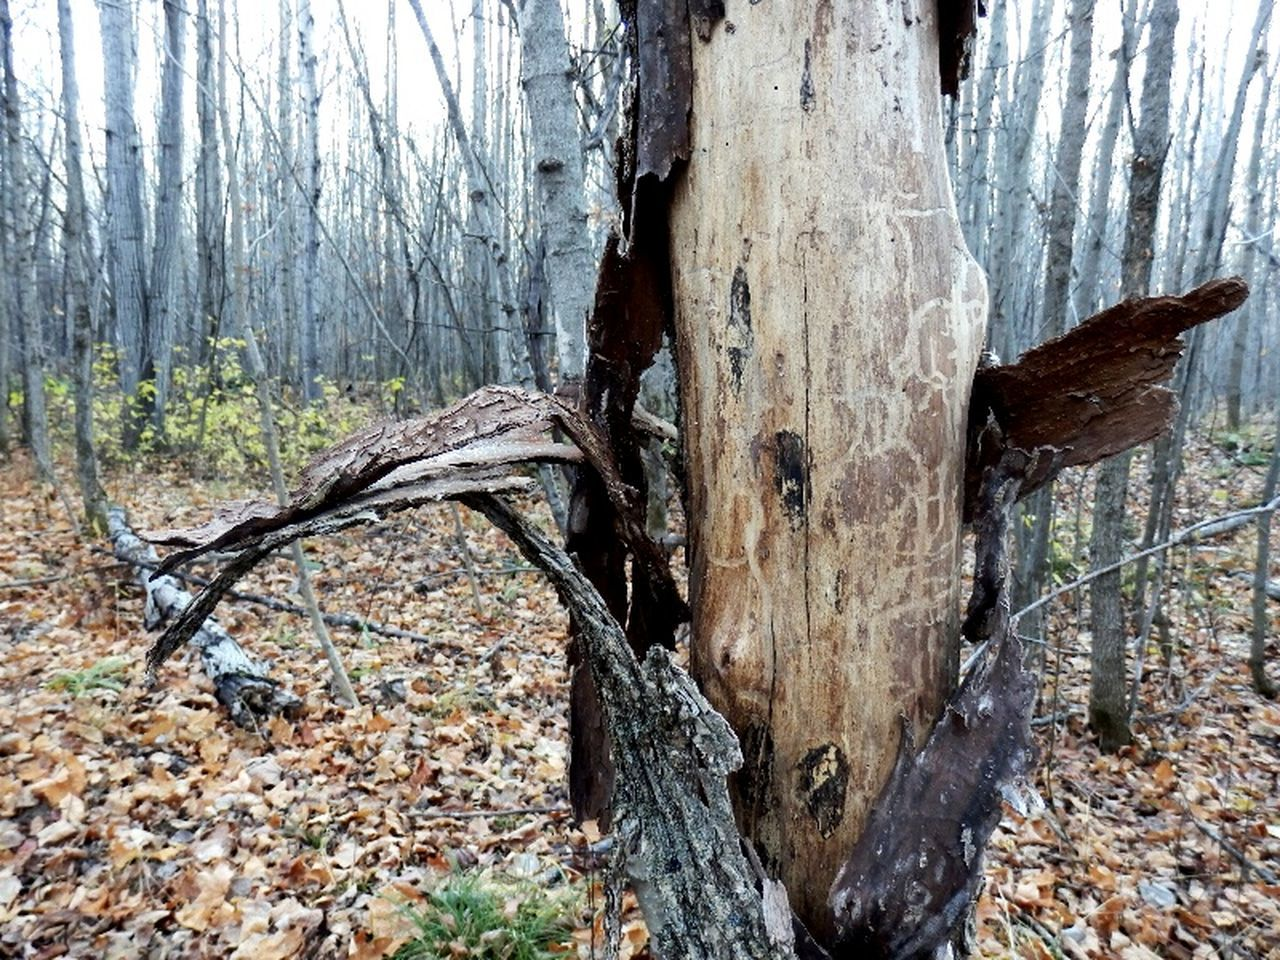 tree trunk, tree, forest, woodland, nature, wood - material, deforestation, day, log, no people, outdoors, tree stump, branch, close-up, dead tree